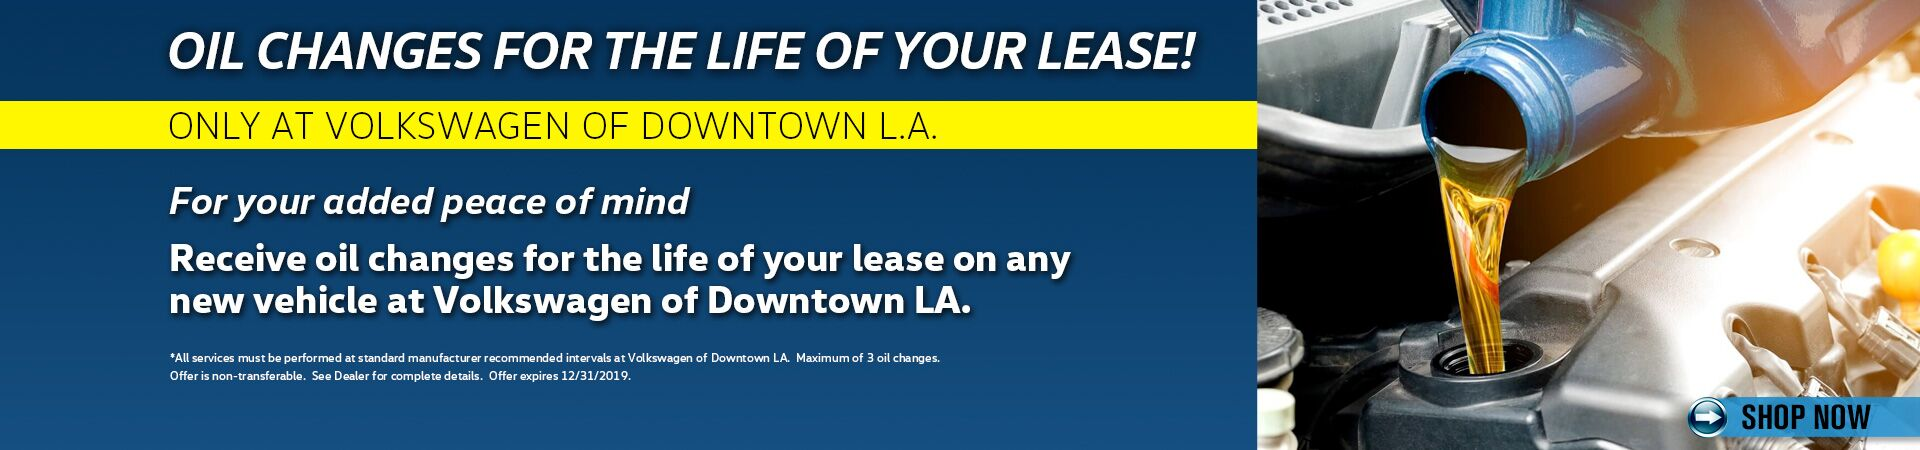 Oil Changes for the Life of your Lease